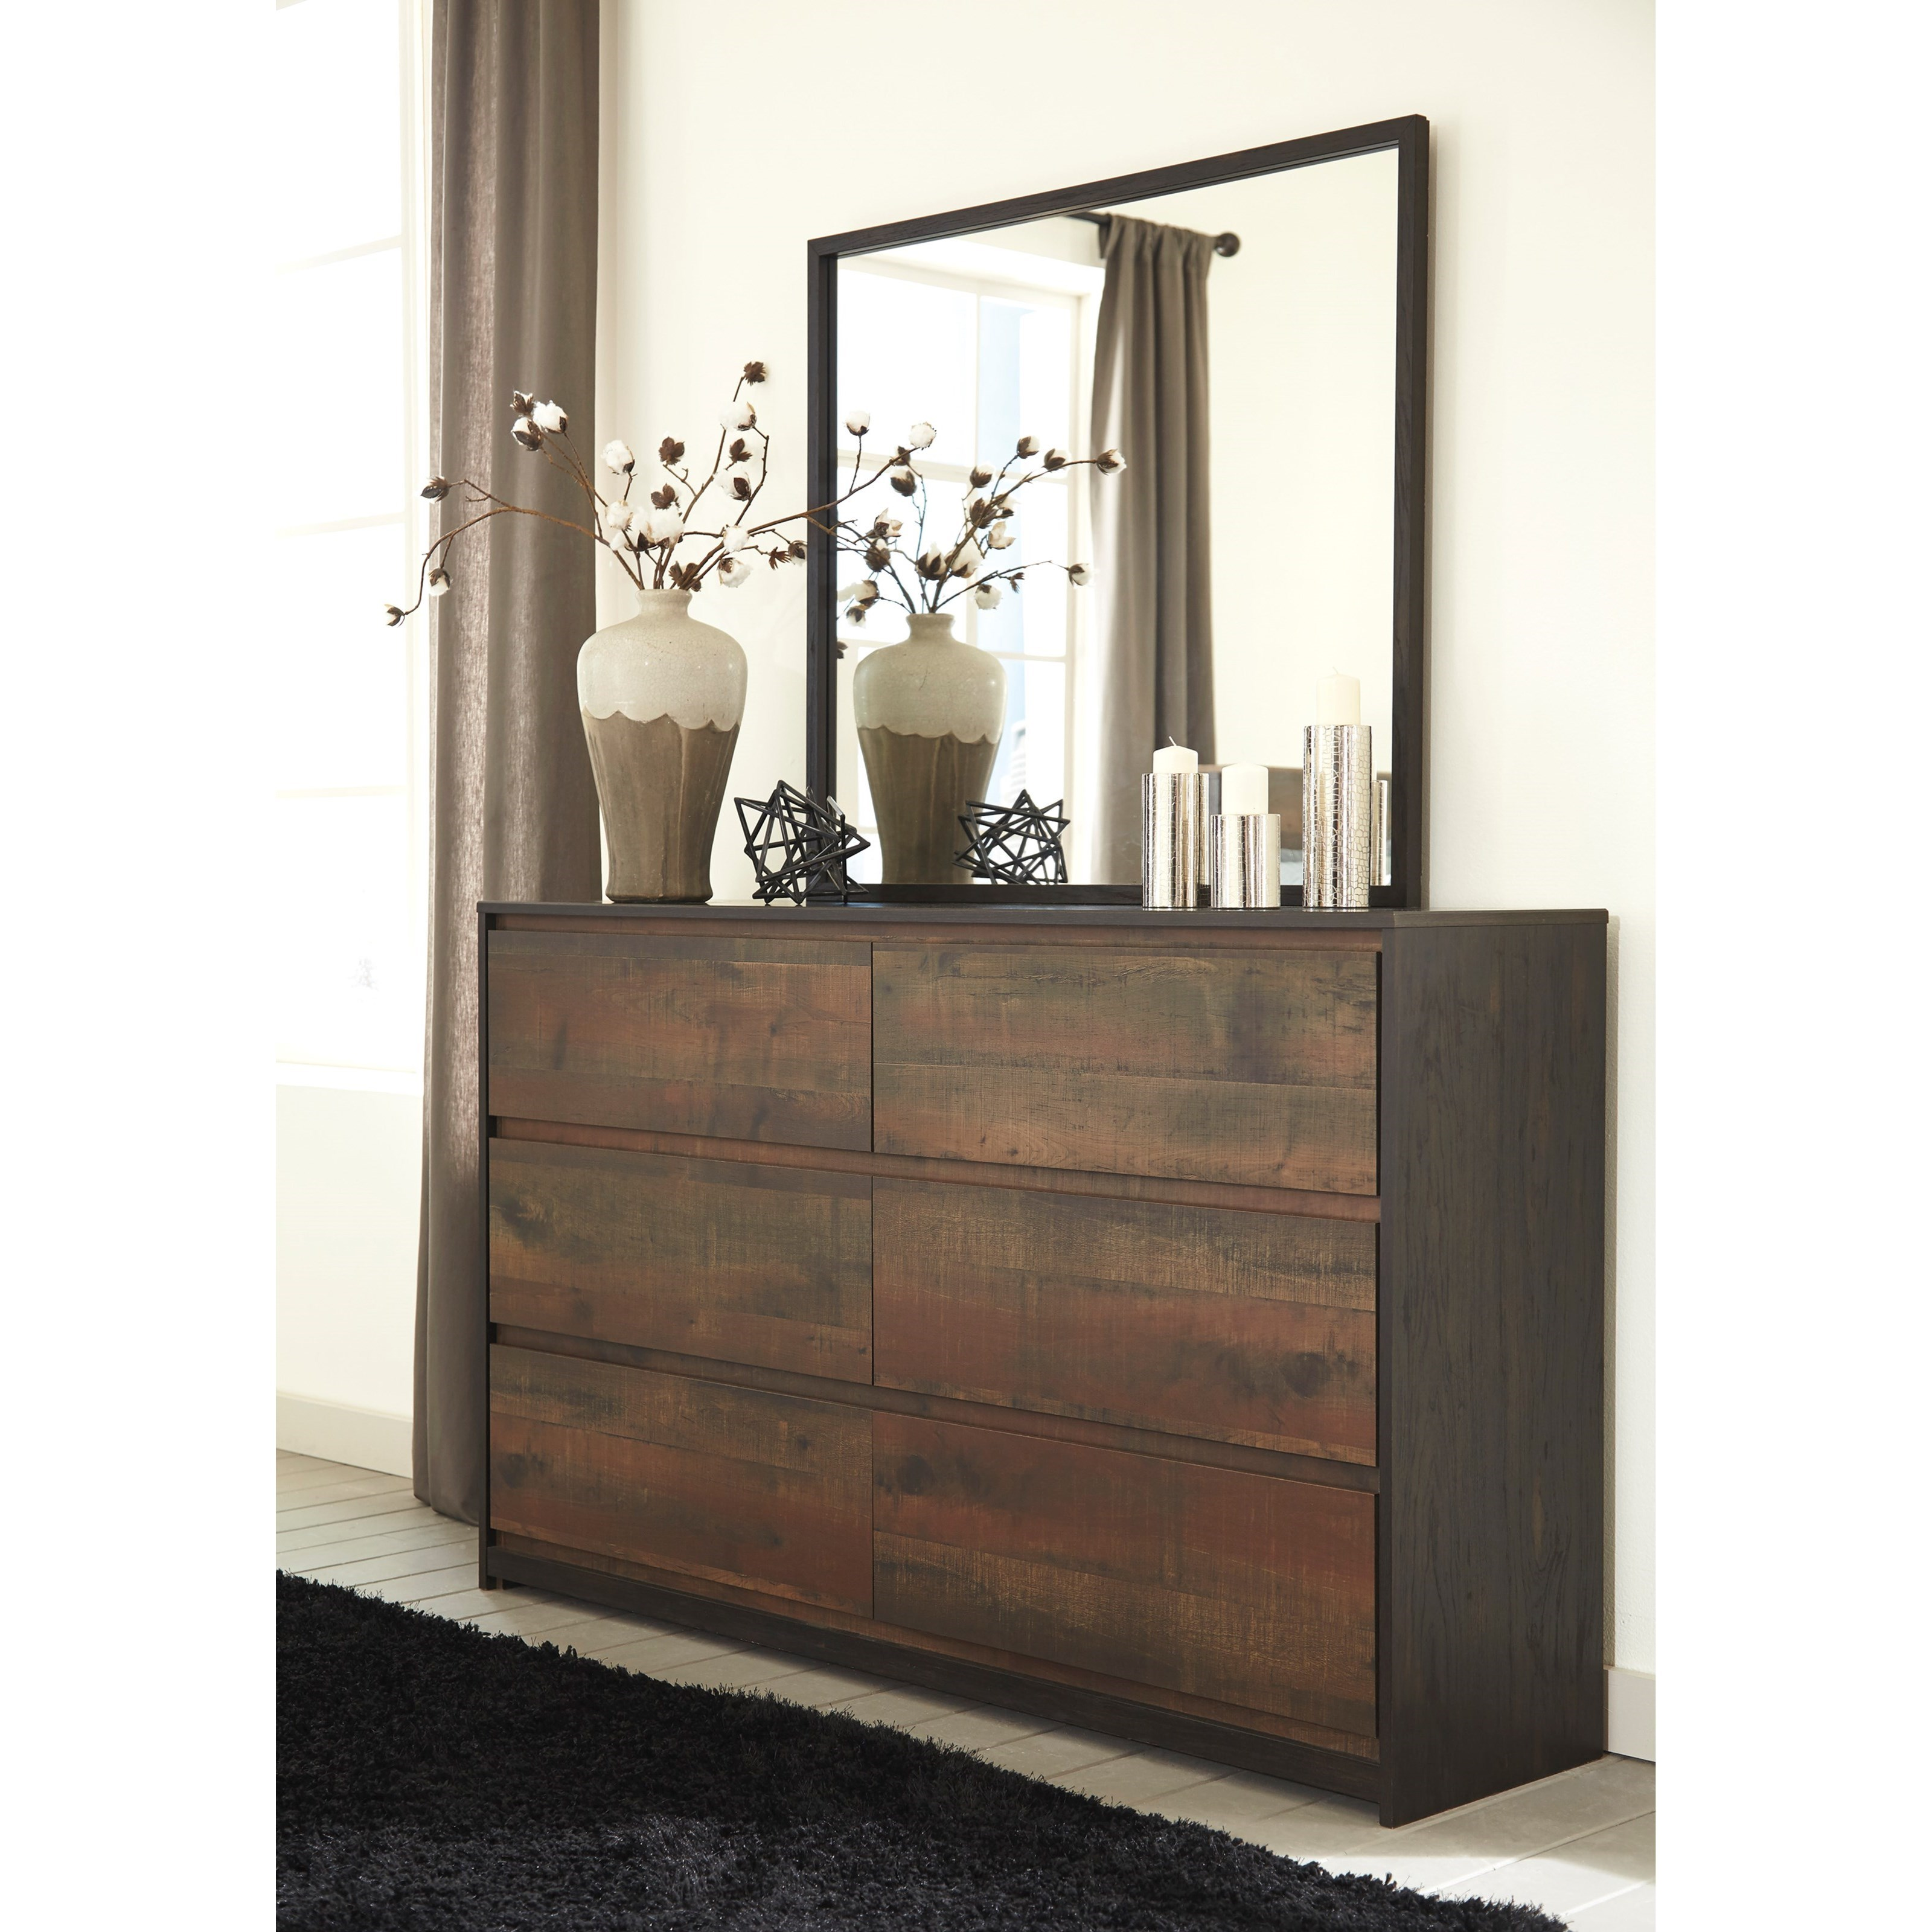 Furniture By Ashley: Signature Design By Ashley Windlore B320-31 Modern Rustic Dresser